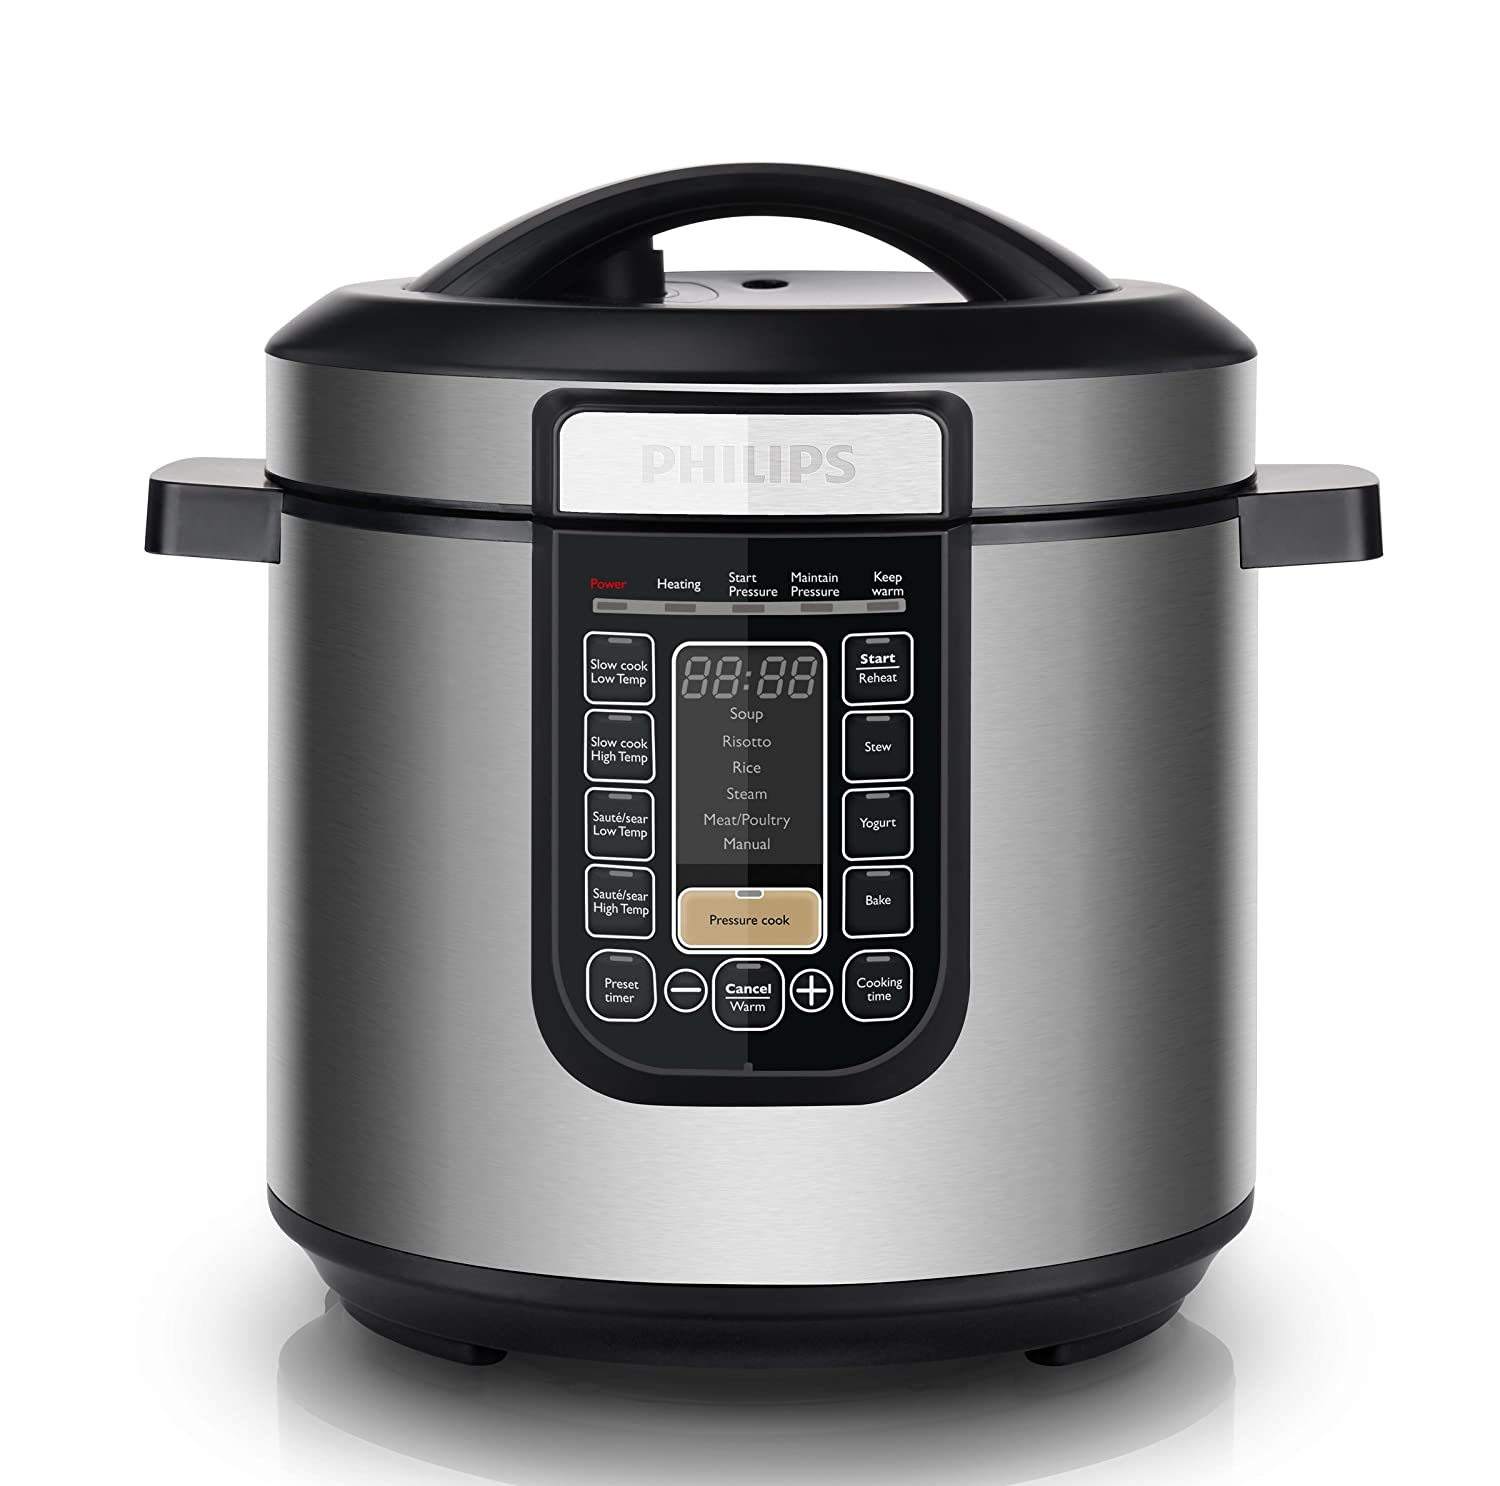 Philips Original All-in-One Cooker